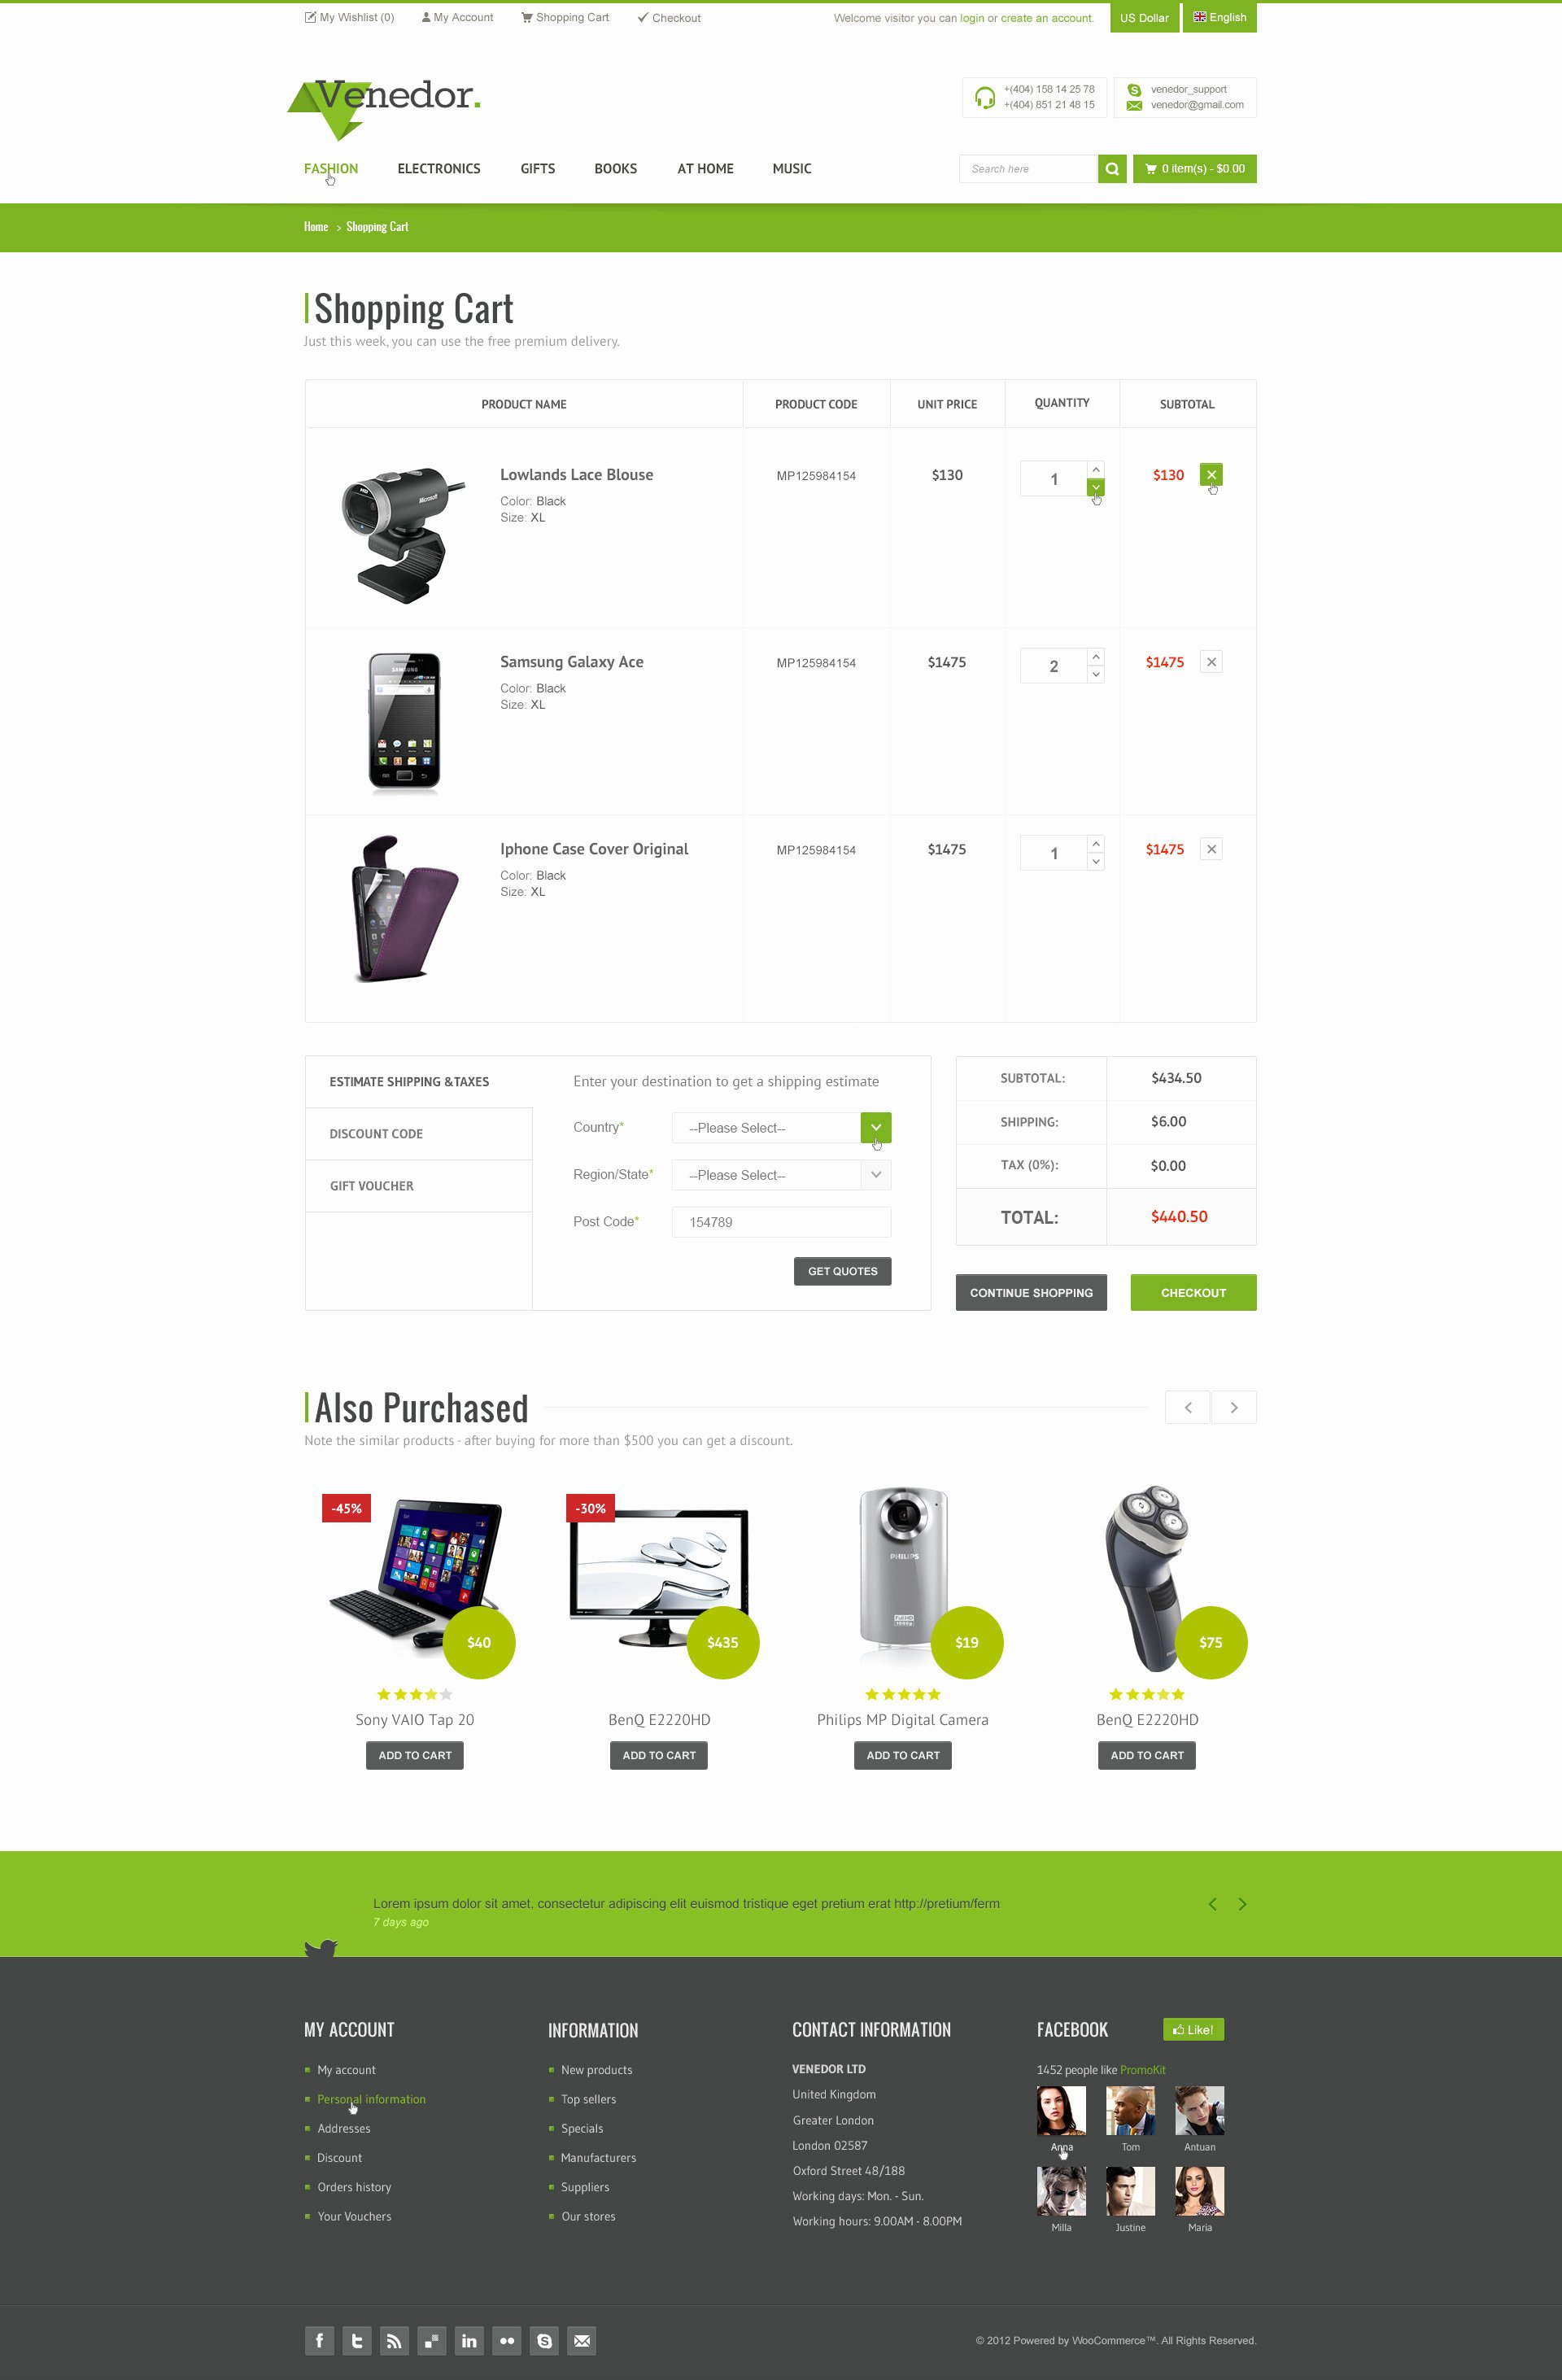 Bootstrap Shopping Cart Template Inspirational Venedor Bootstrap Responsive E Merce Psd by